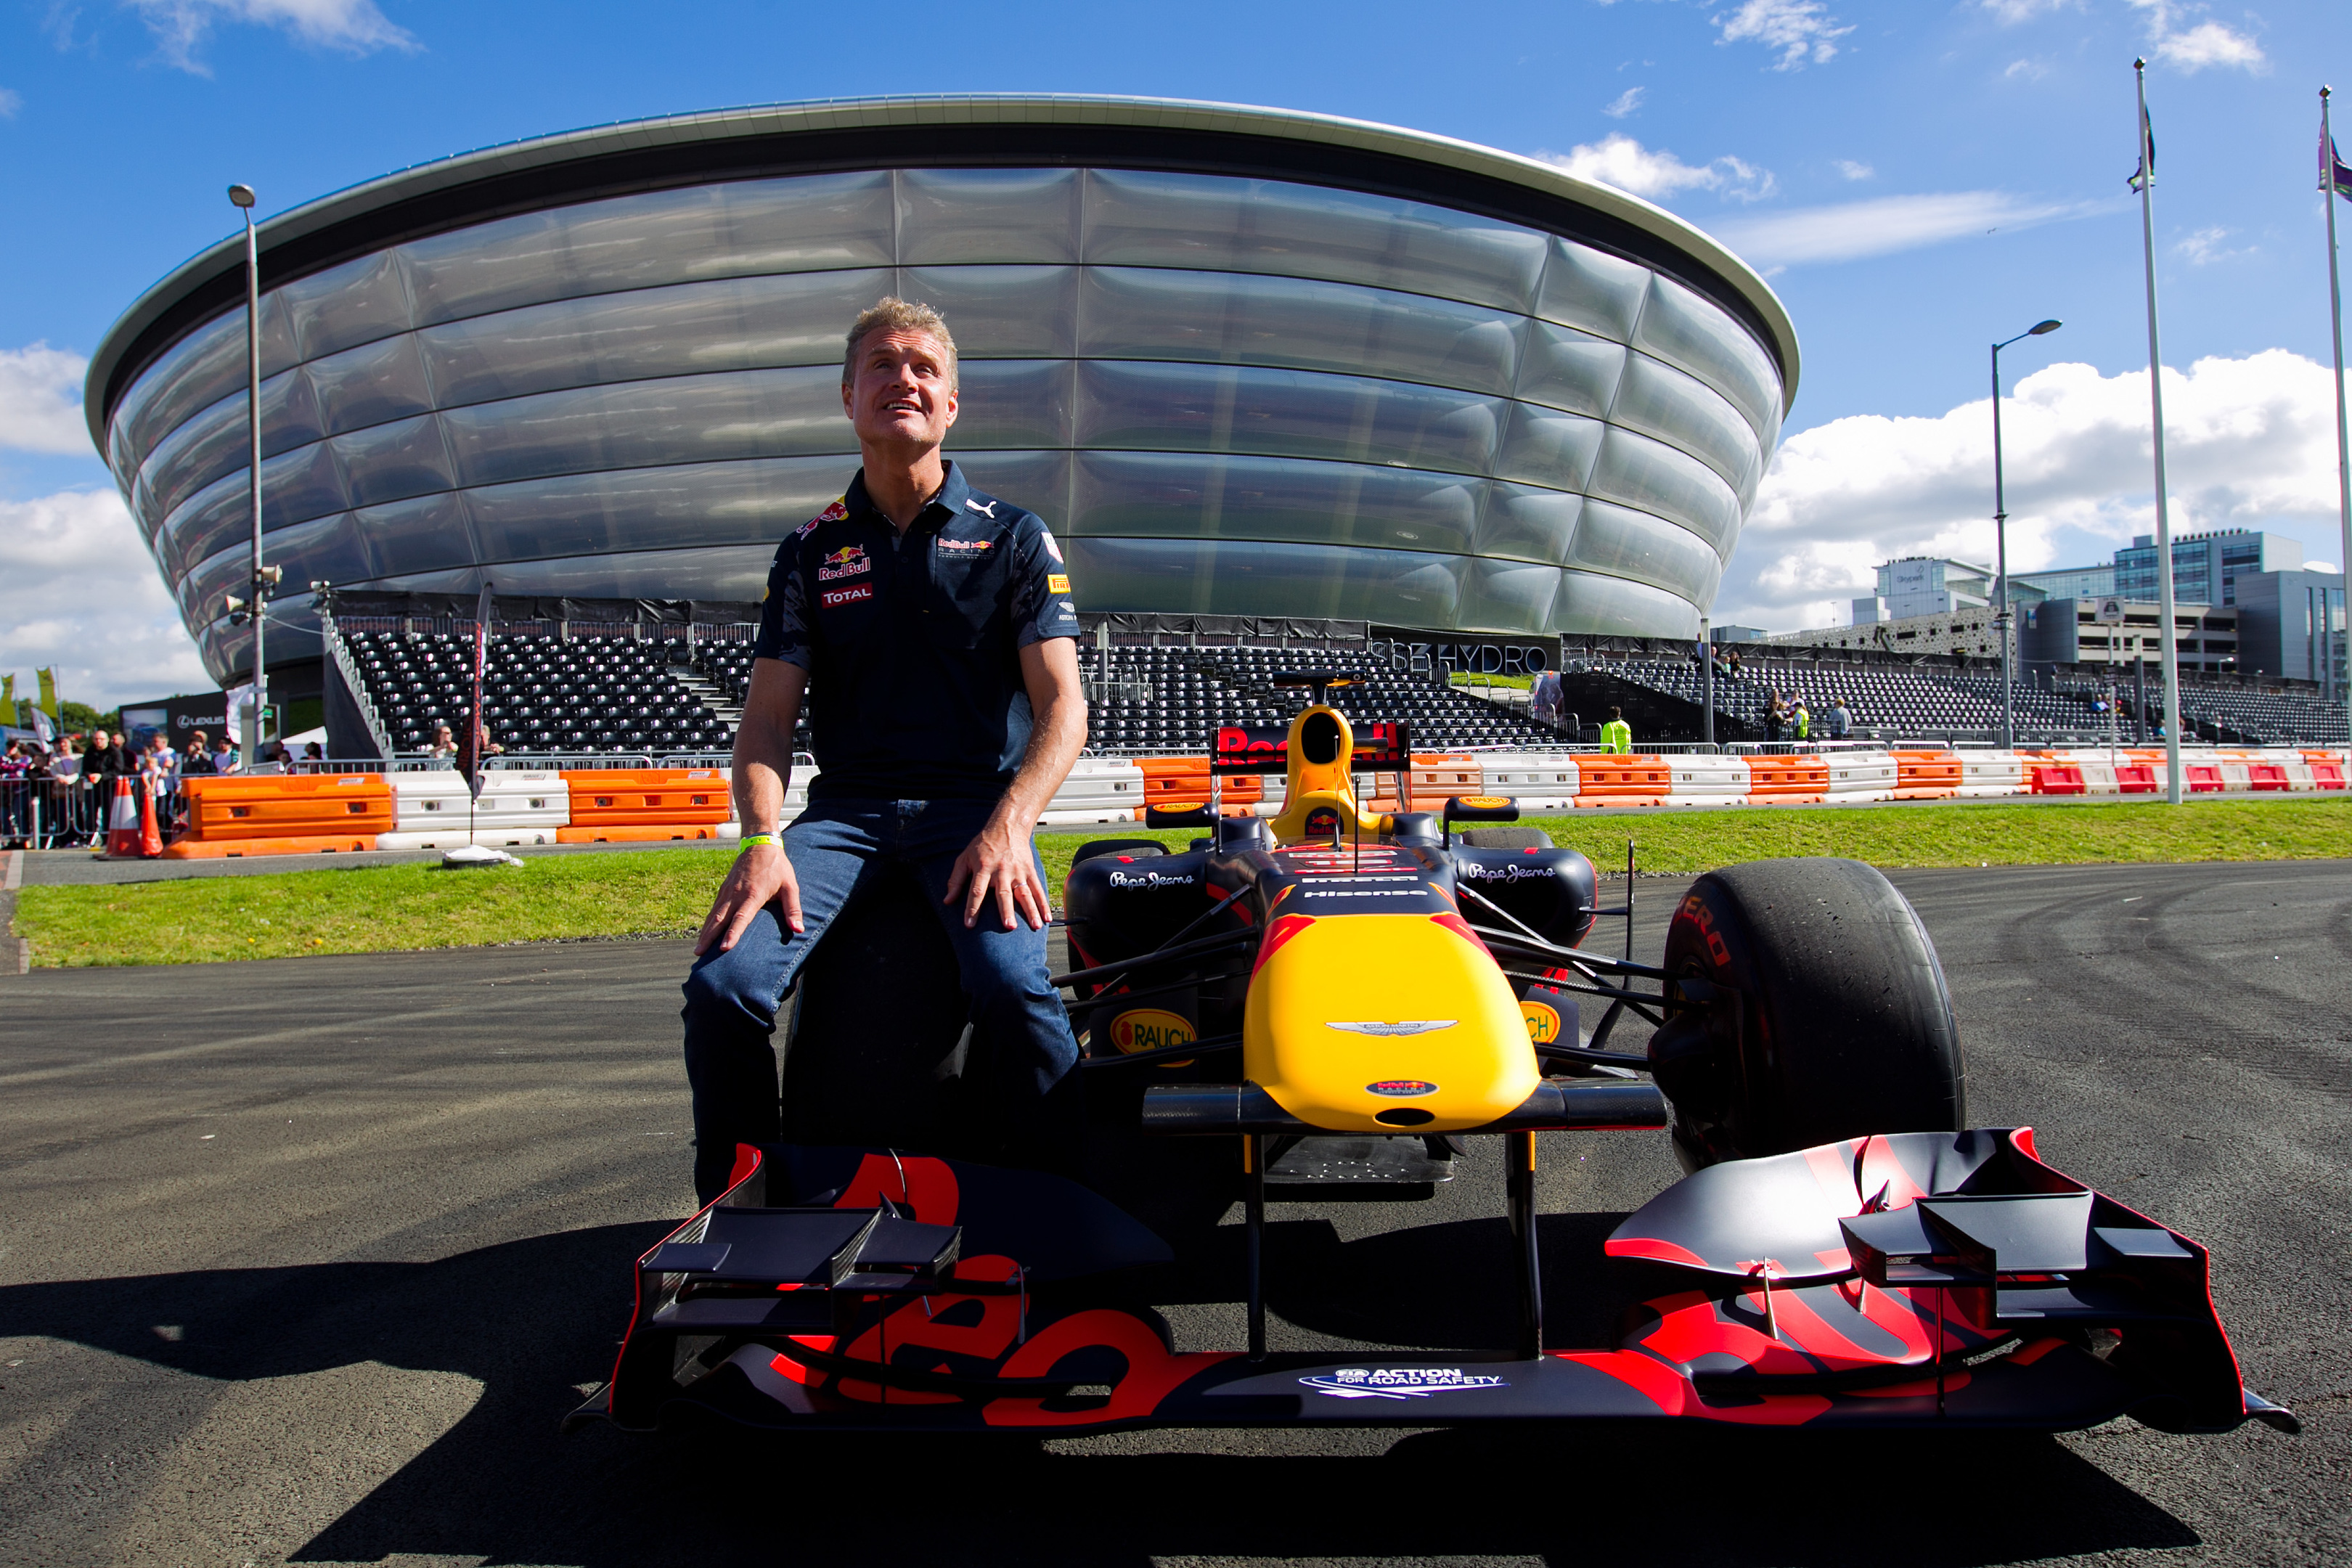 David Coulthard with F1 car at Ignition Festival car show at The SECC / SSE Hydro Arena, in Glasgow (Andrew Cawley/Sunday Post)